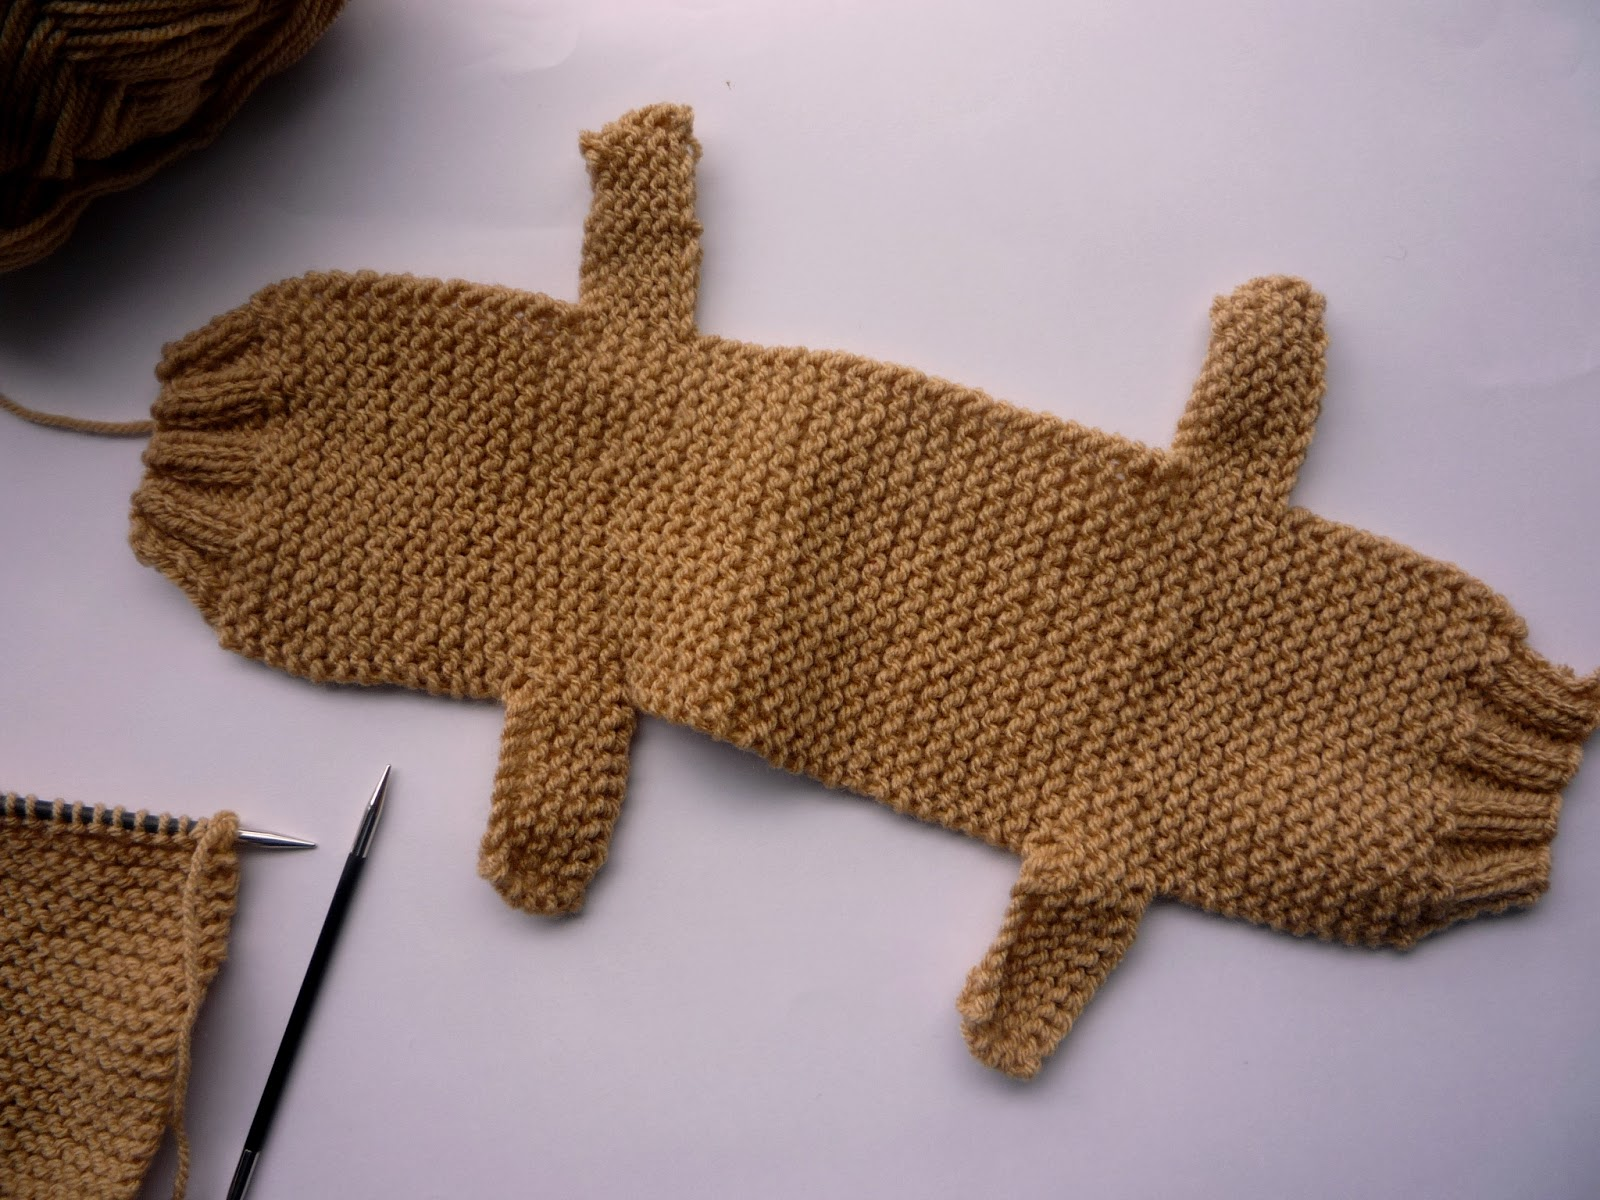 How to knit a teddy bear in one piece best bear 2017 teddy bear pattern to of crochet and knit patterns for home charity bankloansurffo Gallery